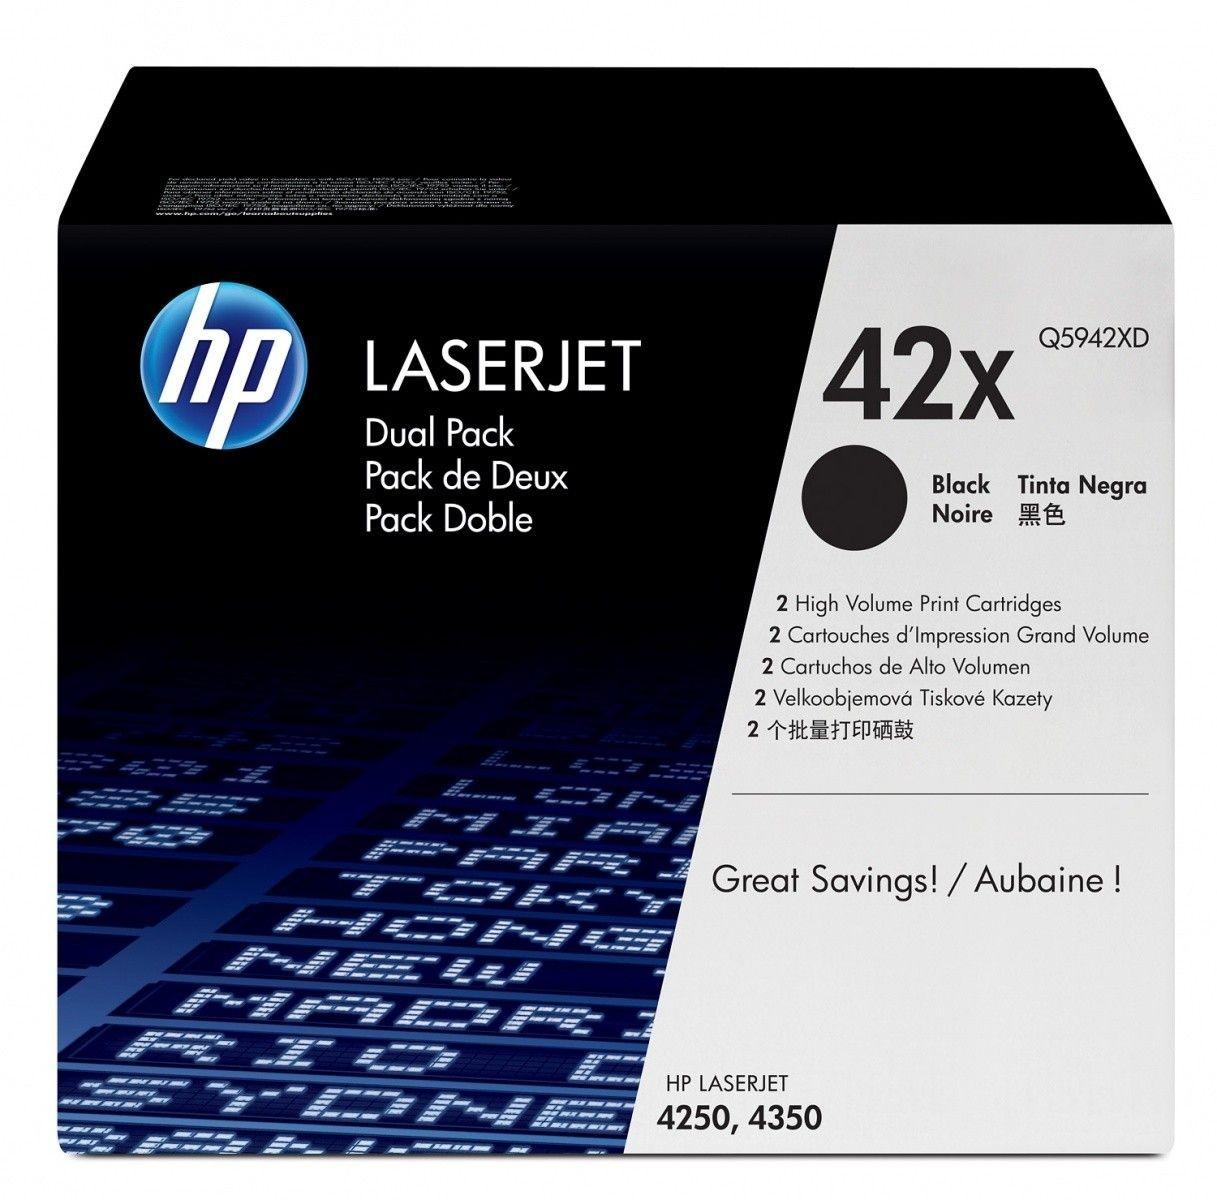 HP Toner HP black dual pack | 2x20000str | LJ4250/4350